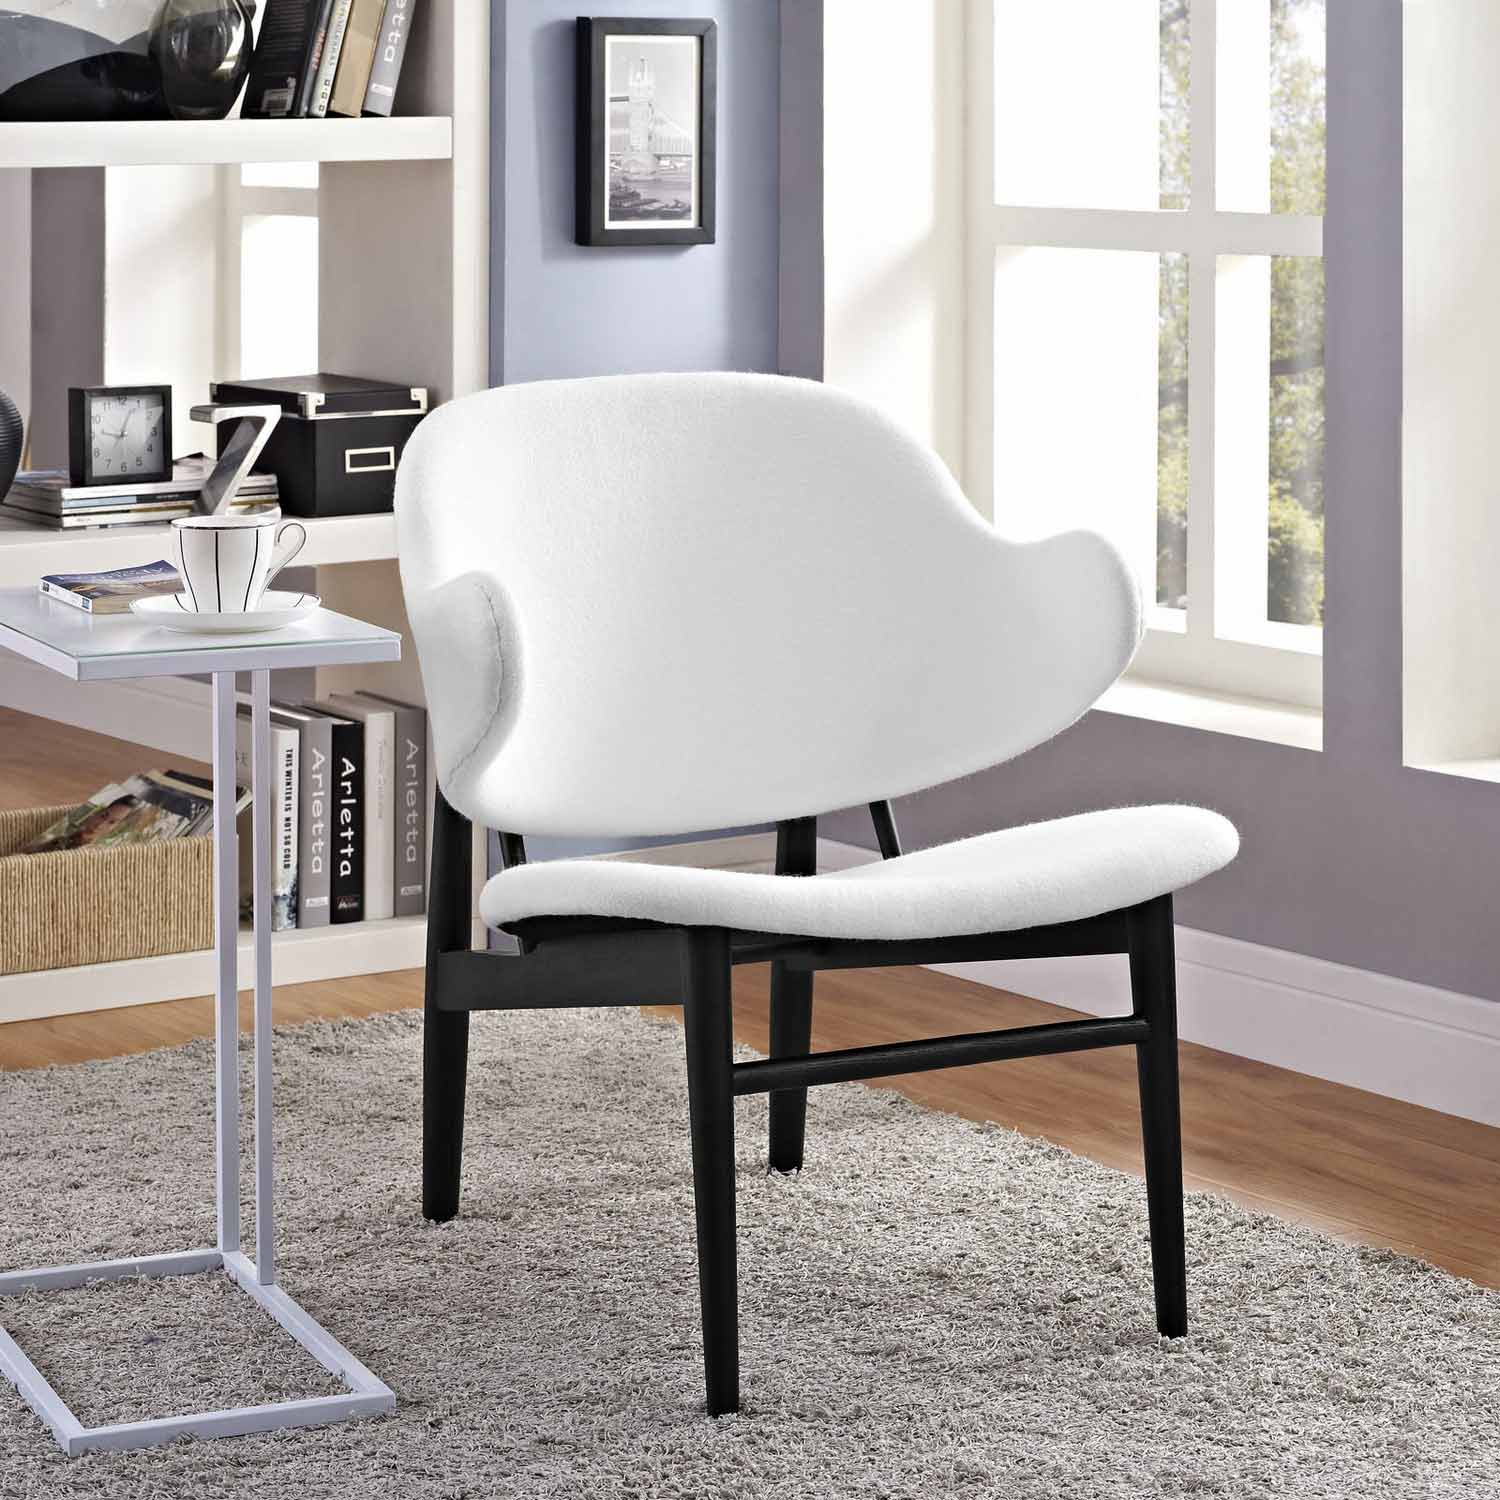 Modway Suffuse Lounge Chair - Black/White